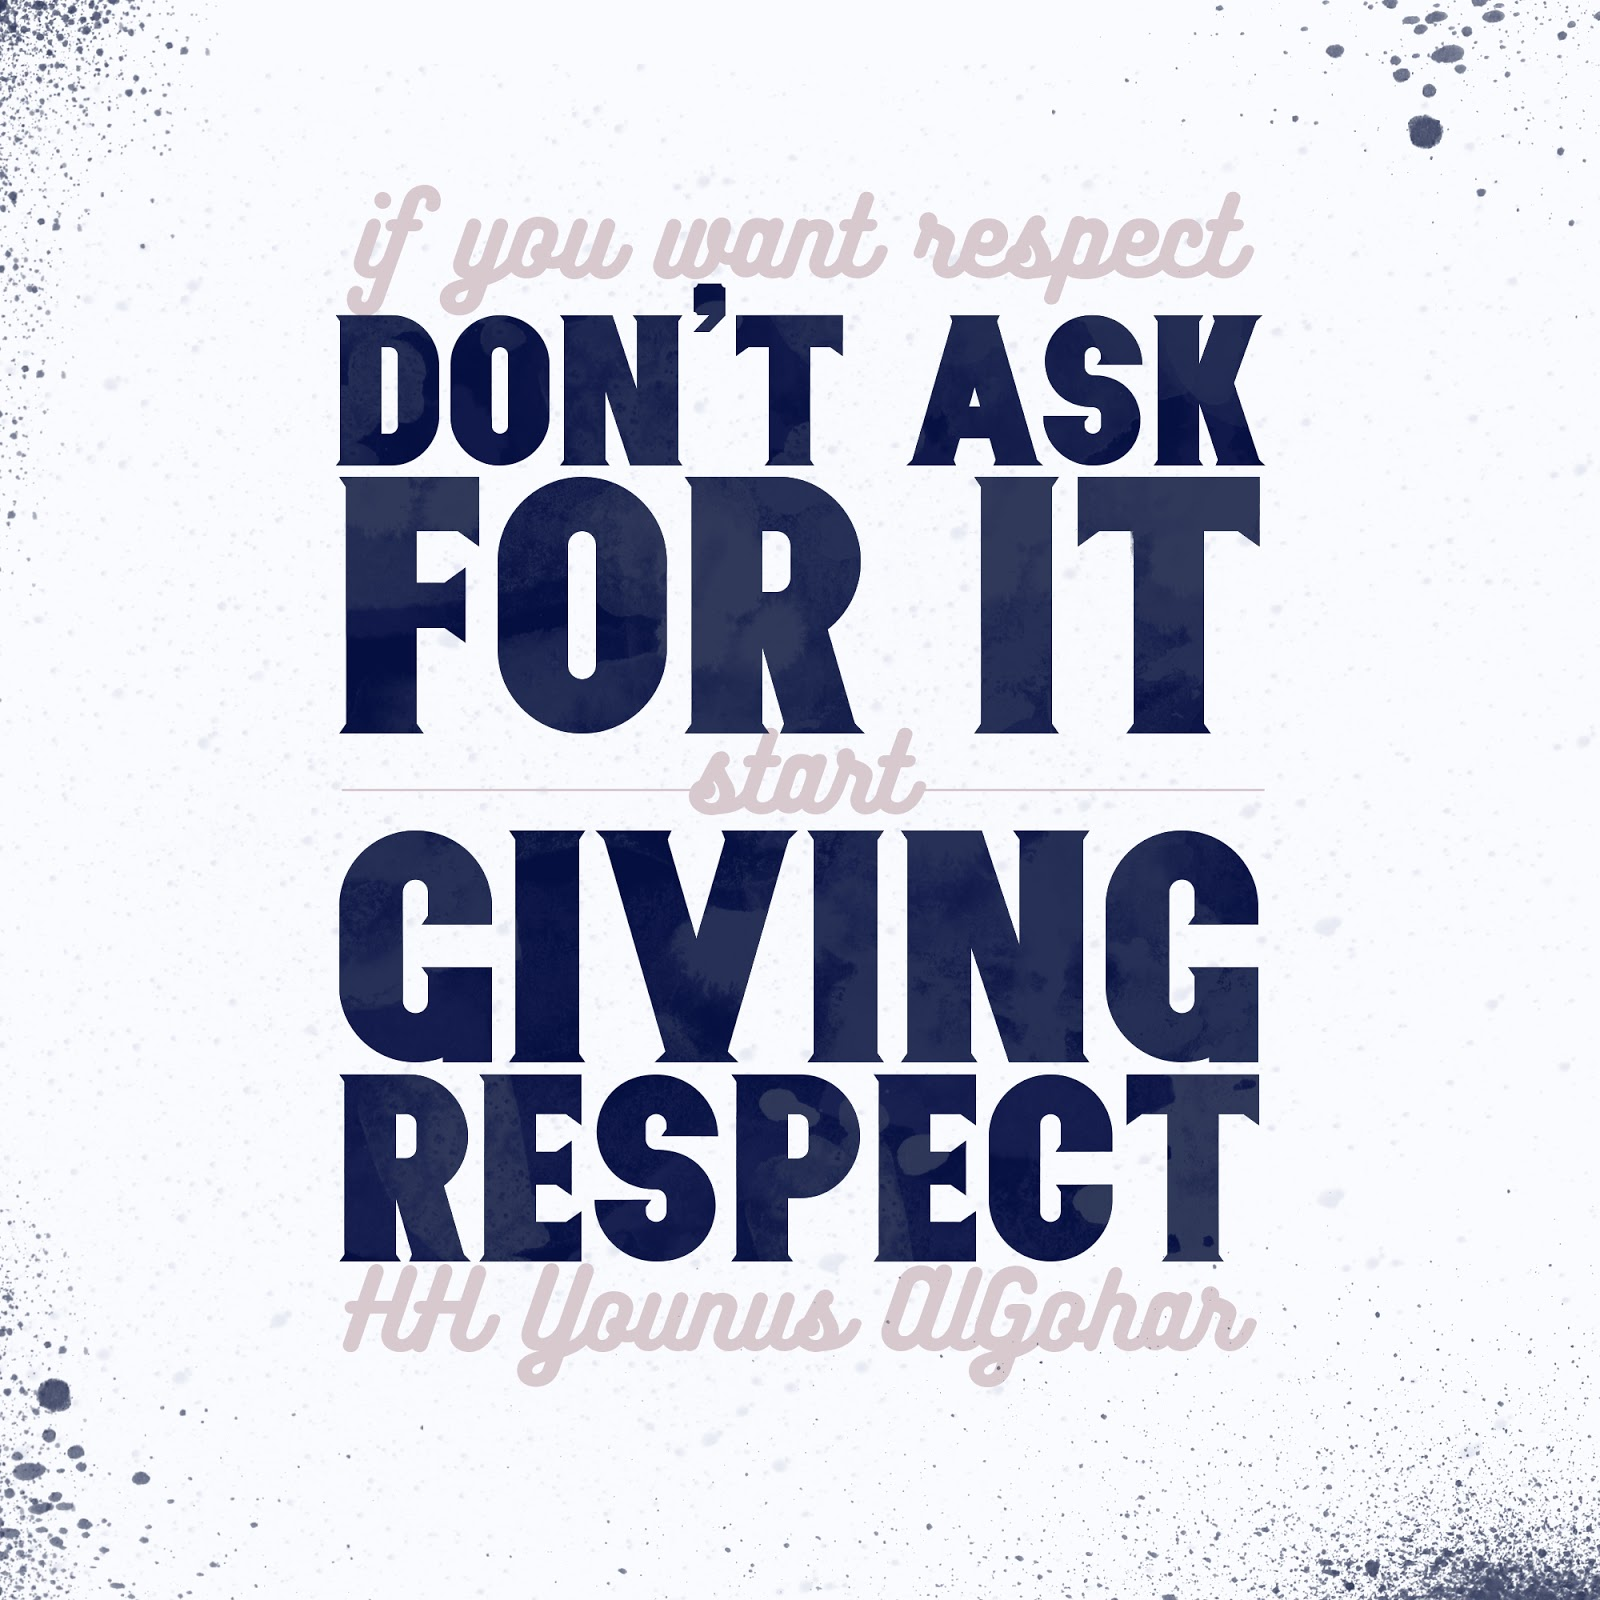 Quotes Related To Respect: The Official MFI® Blog: Quote Of The Day: If You Want